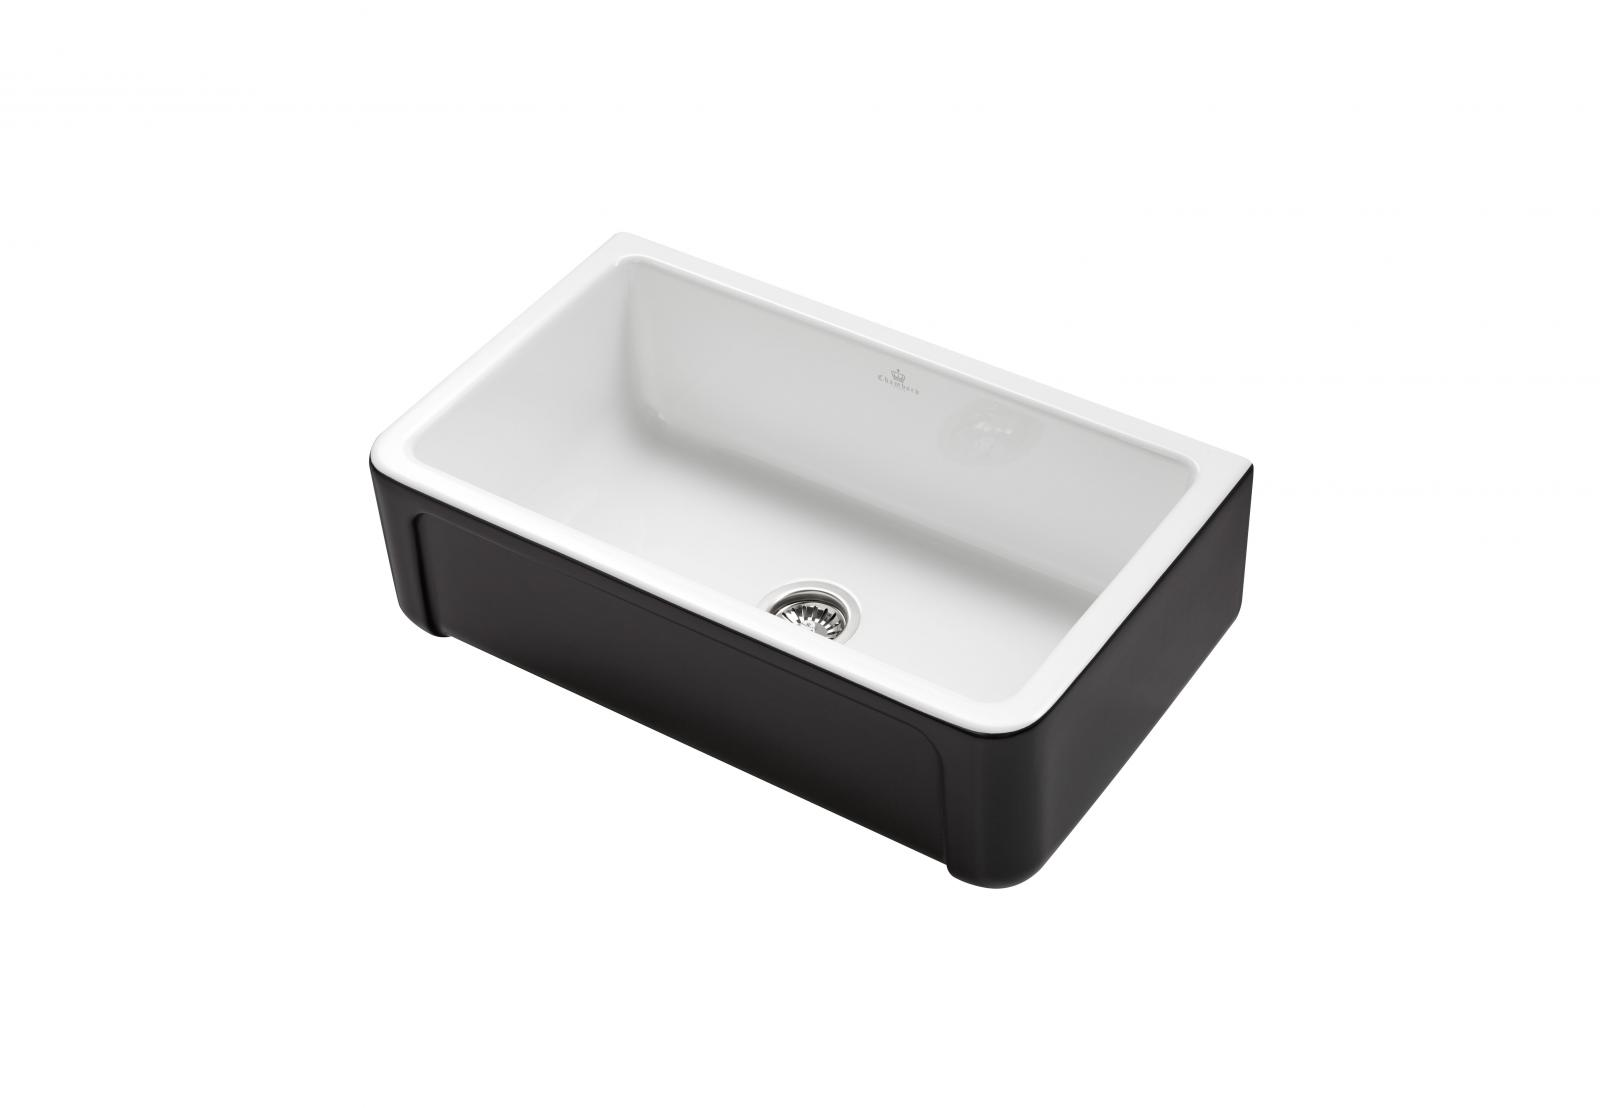 High-quality sink Henri II Le Grand Black - single bowl, ceramic ambience